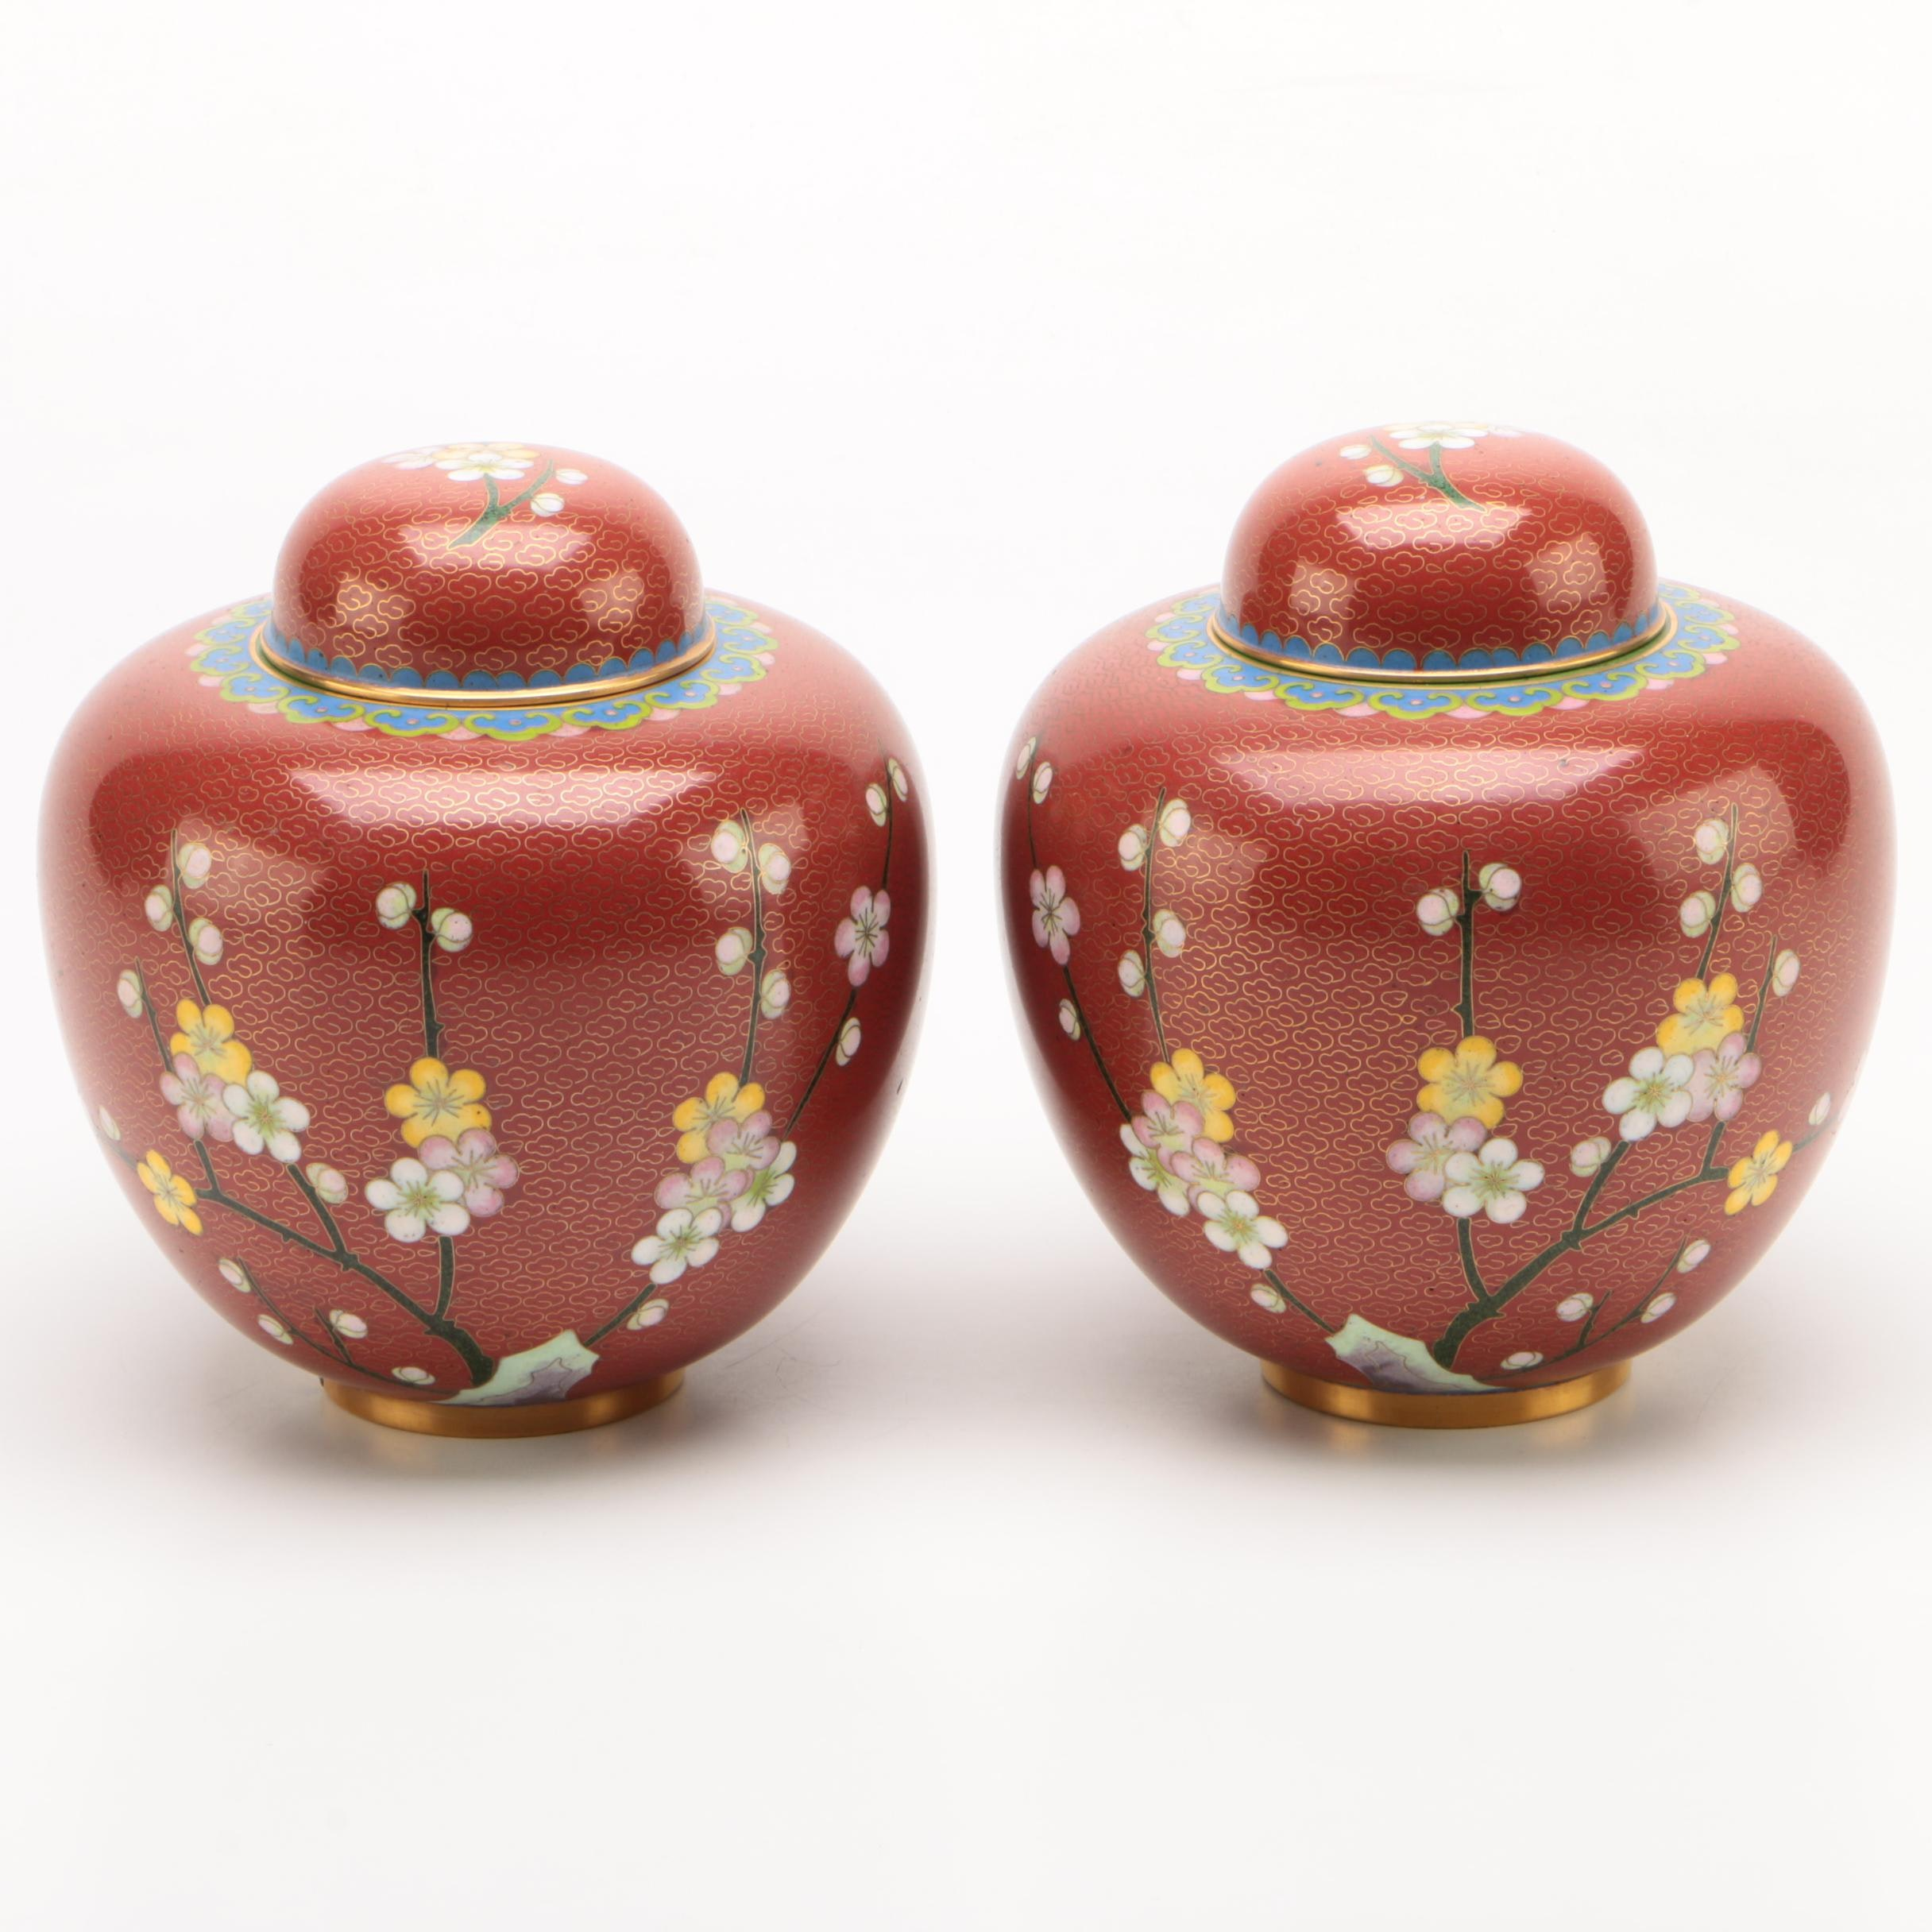 Chinese Cloissoné Ginger Jars with Cherry Blossom Motif